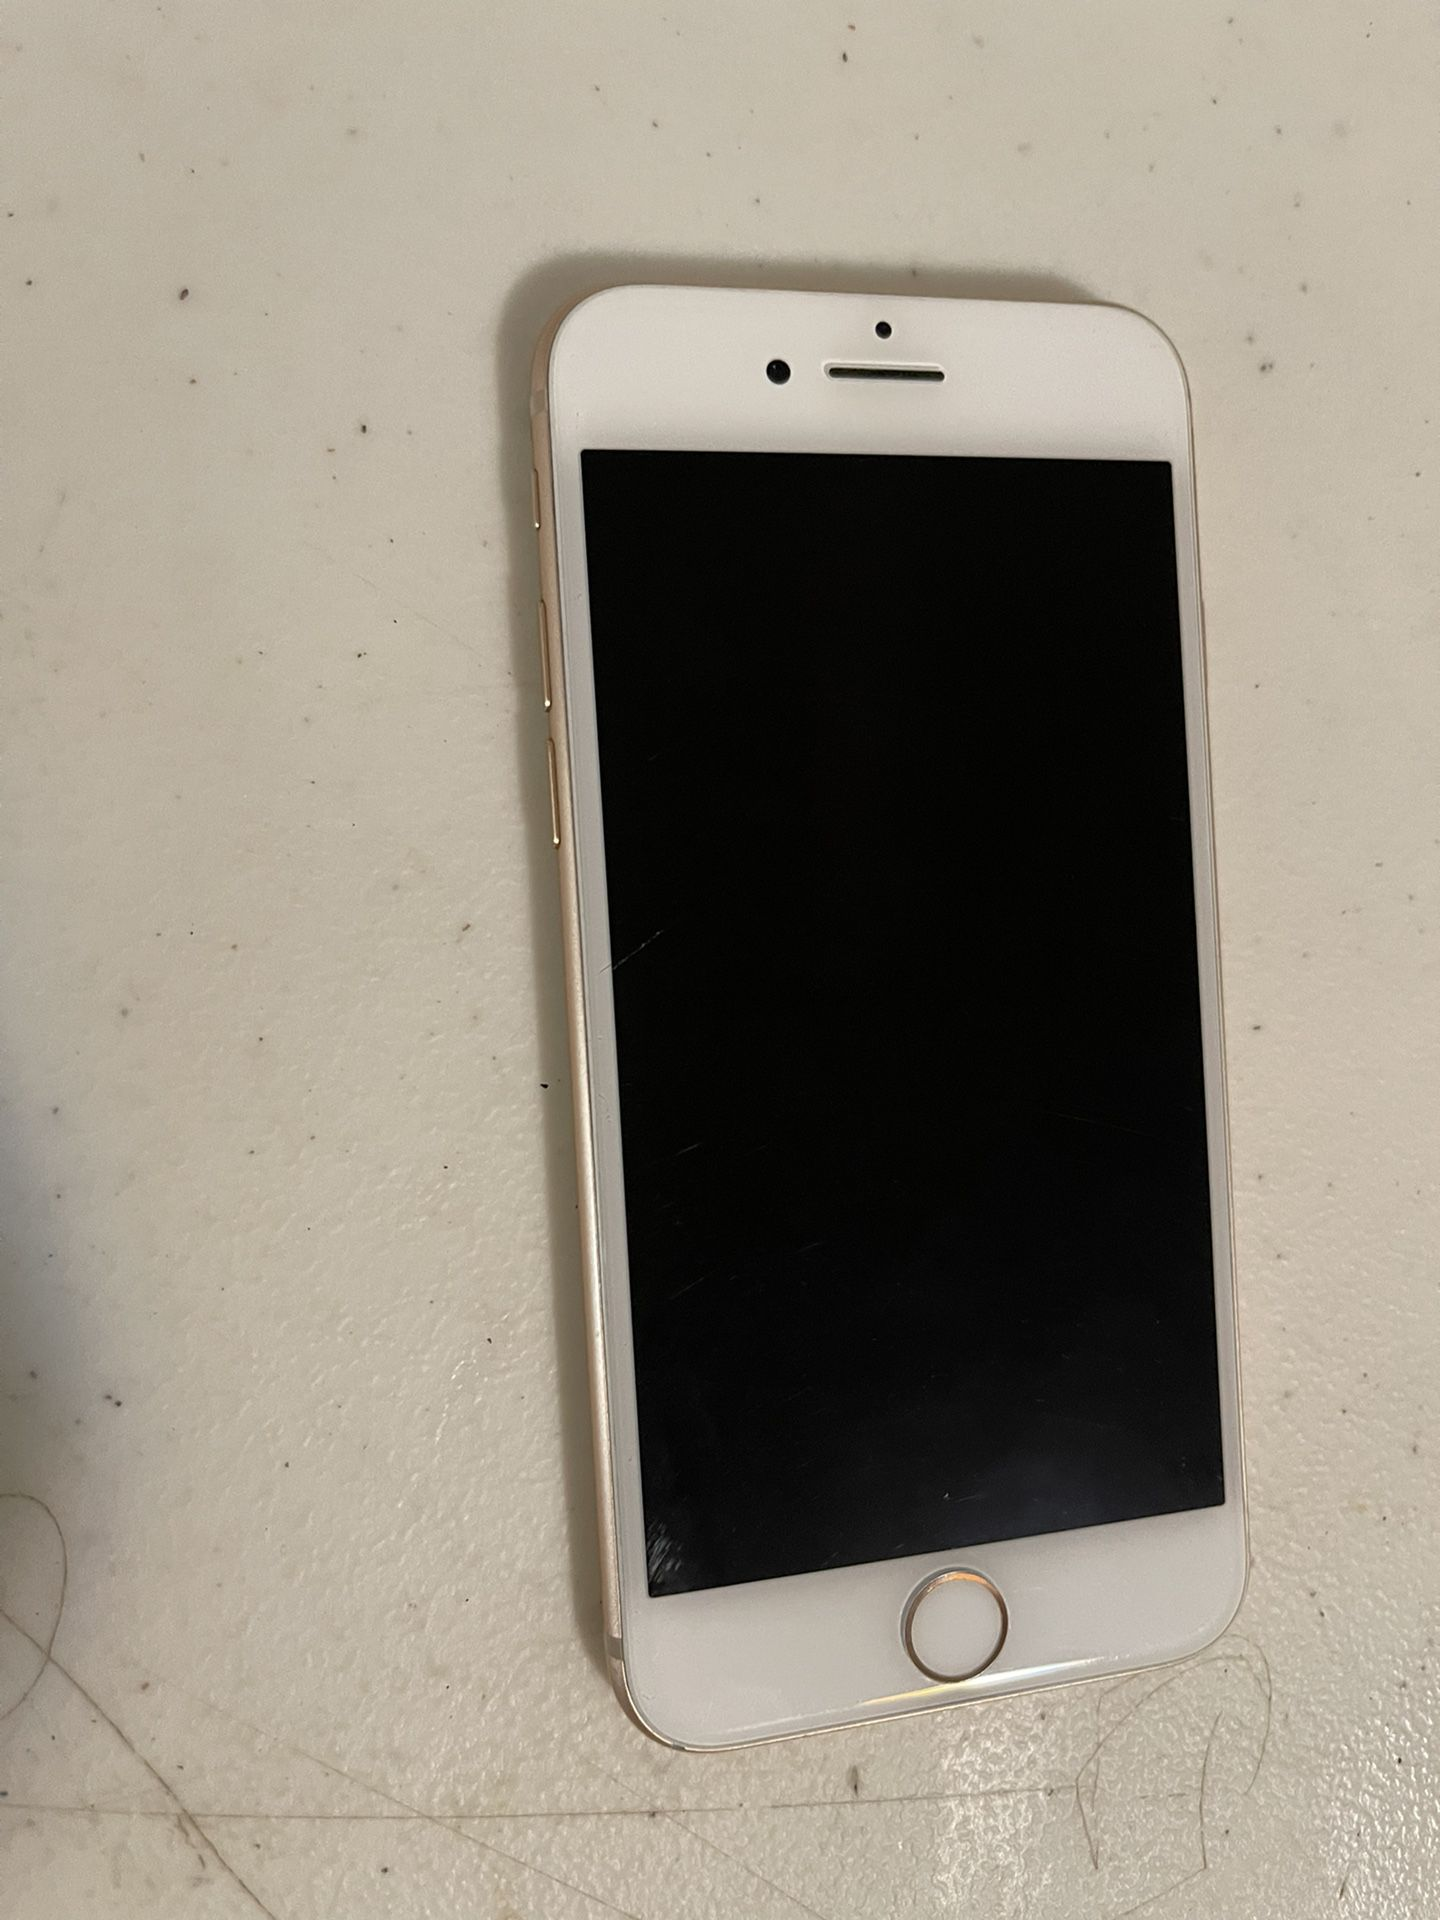 Apple iPhone 8 64 GB UNLOCKED. Color gold. Work very well. Perfect condition